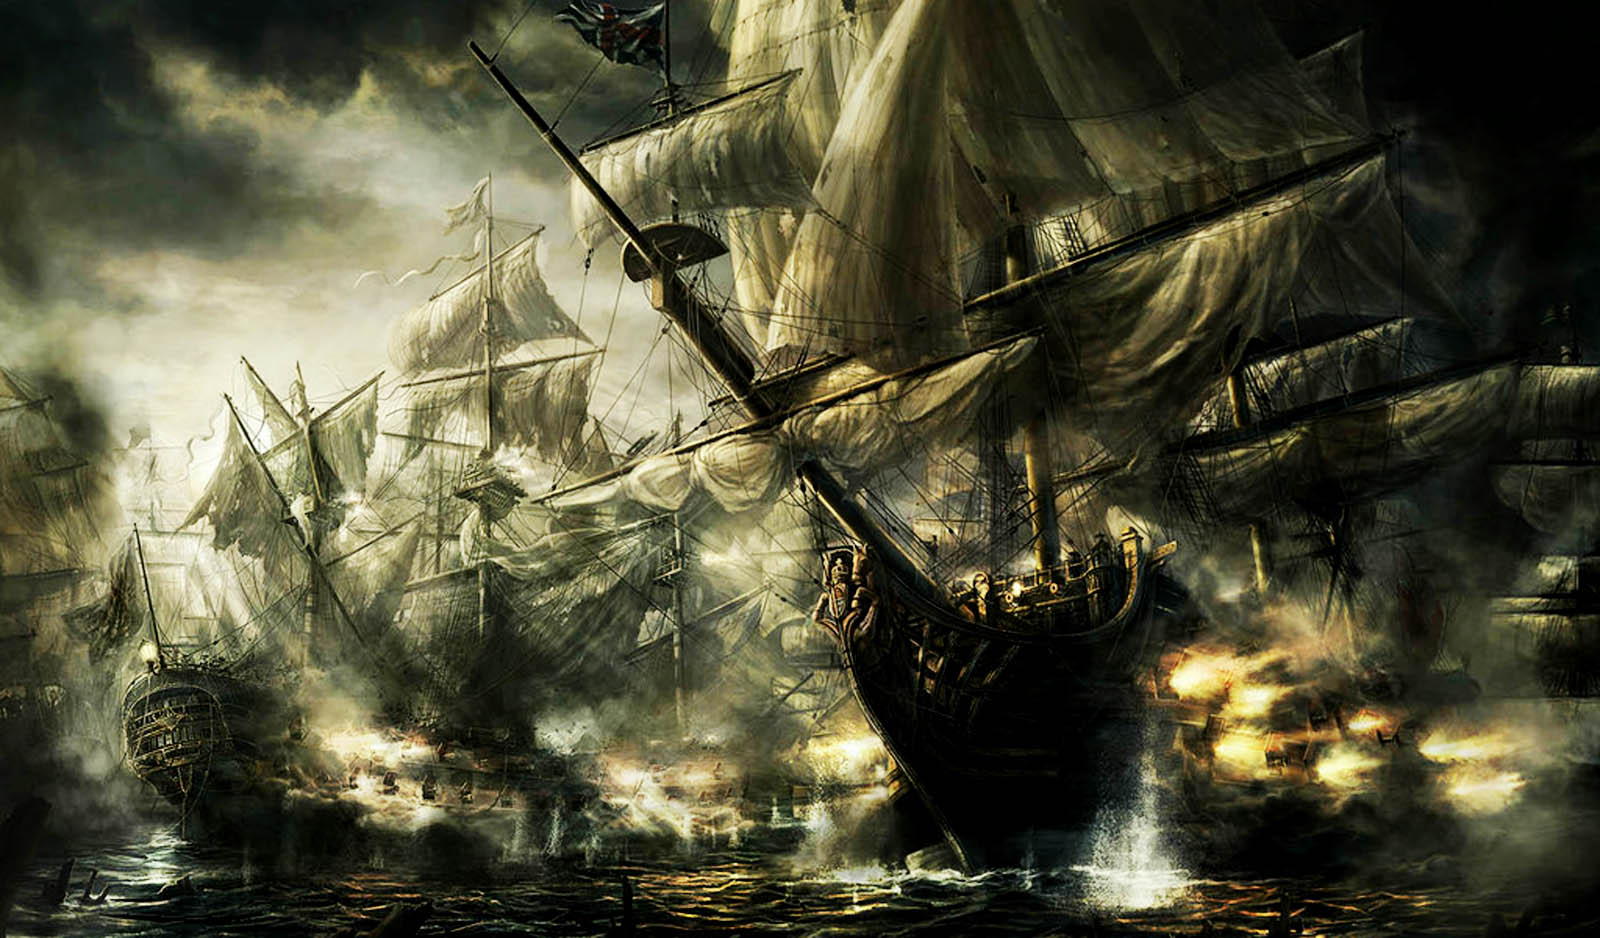 http://4.bp.blogspot.com/-K7Vg3Dx06SI/Tt6sLgXTxXI/AAAAAAAAEx4/IyiL1SRfG44/s1600/Pirate_Ship_Wallpaper_HD.jpg